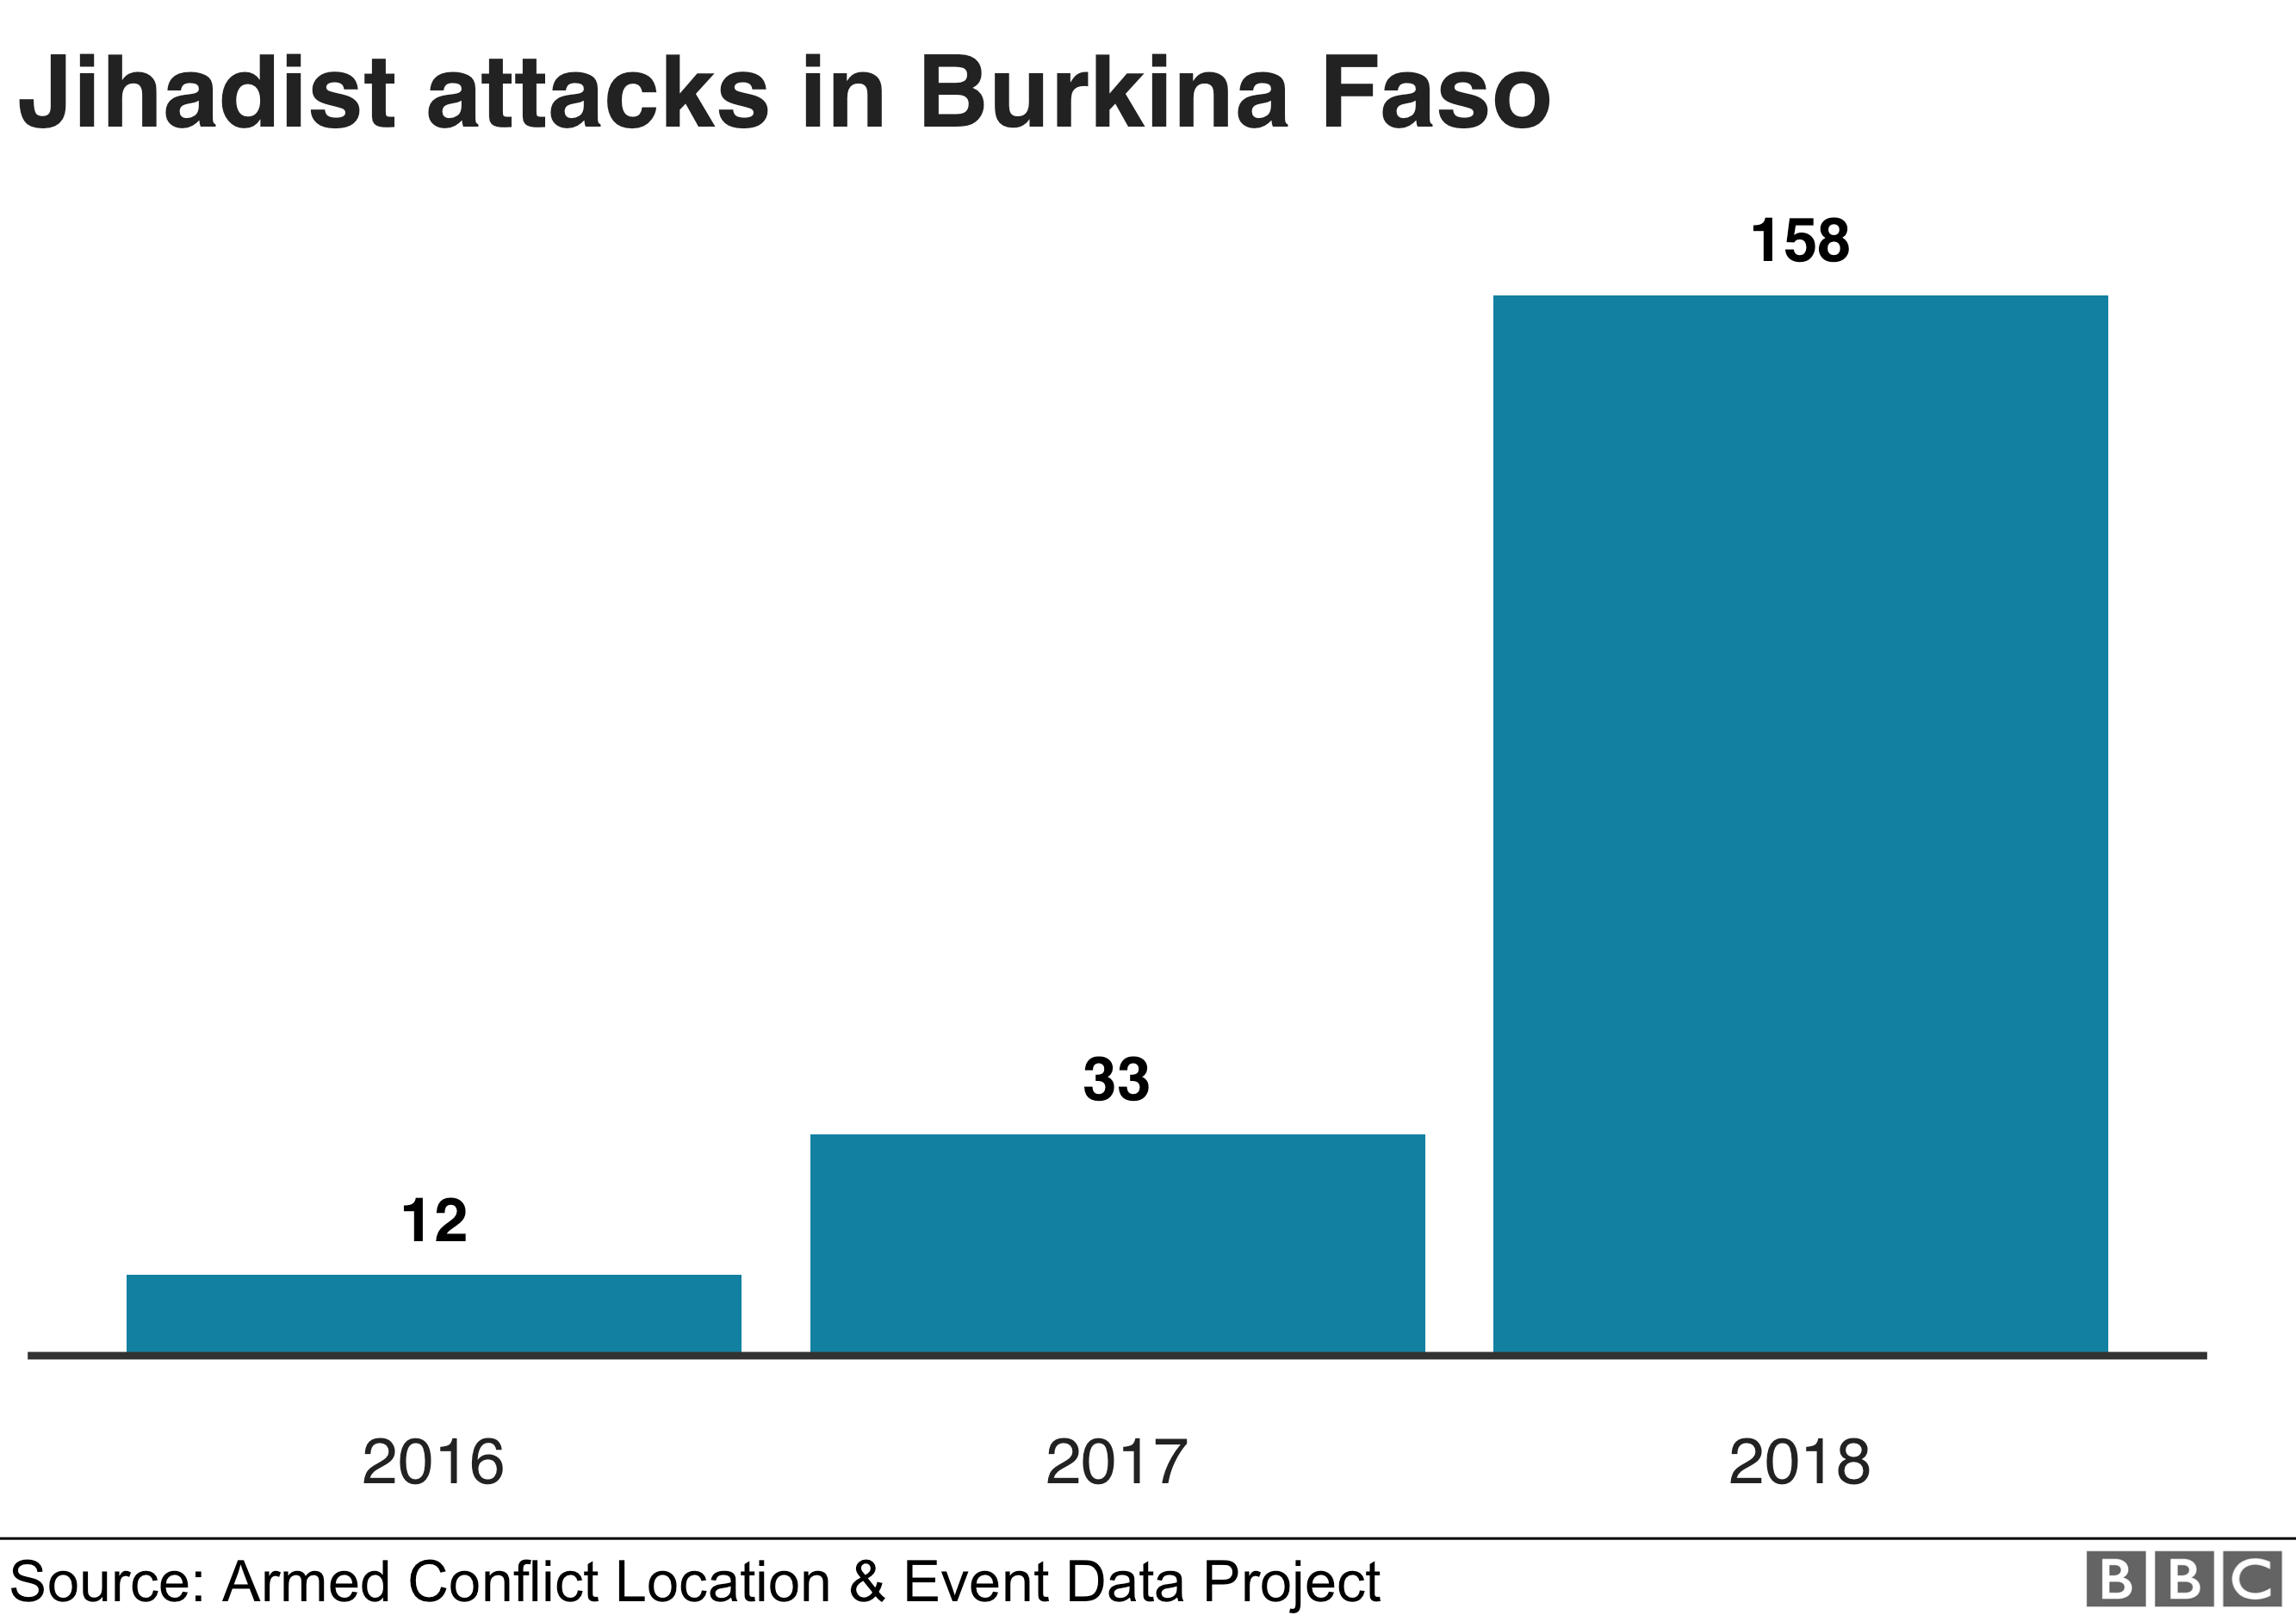 Graphic of jihadist attacks in Burkina Faso